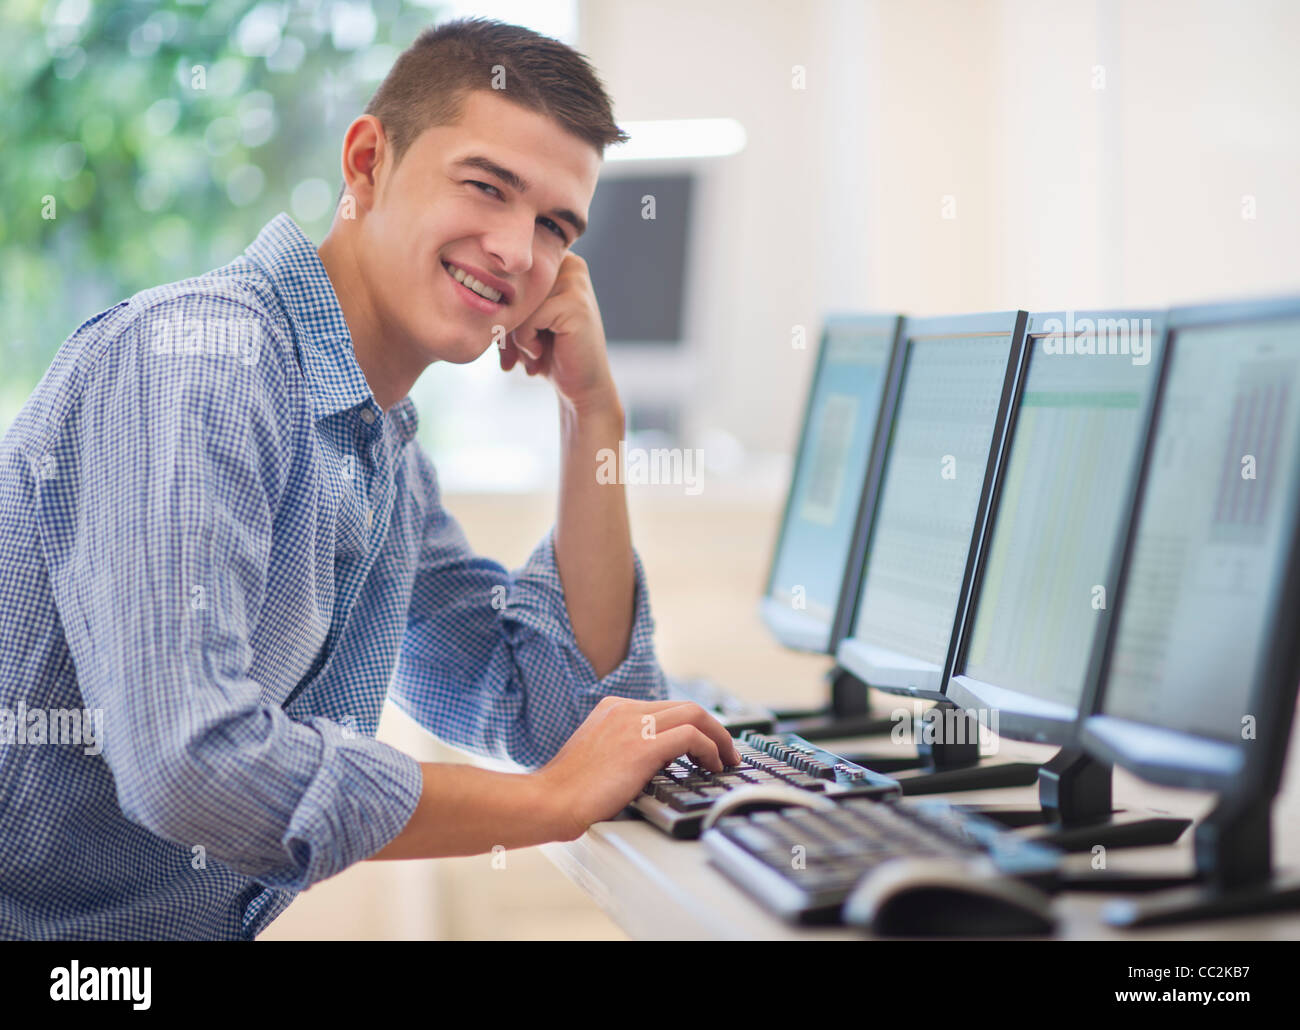 USA, New Jersey, Jersey City, Teenage student (16-17) in computer lab - Stock Image